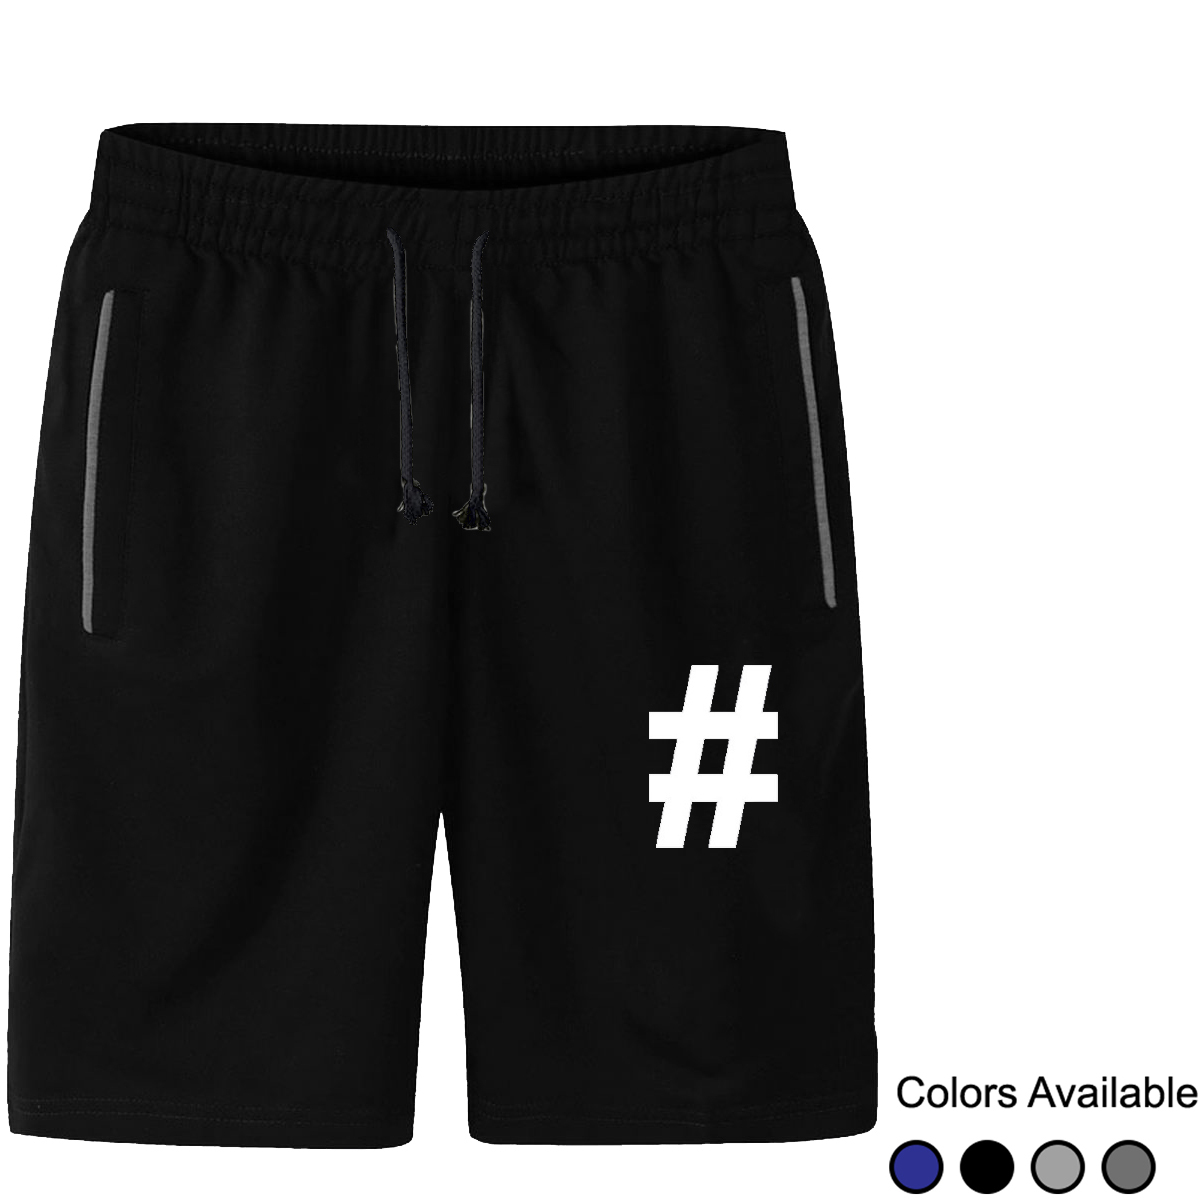 Tag Short Printed Sports Gym Cotton Summer Shorts for Men